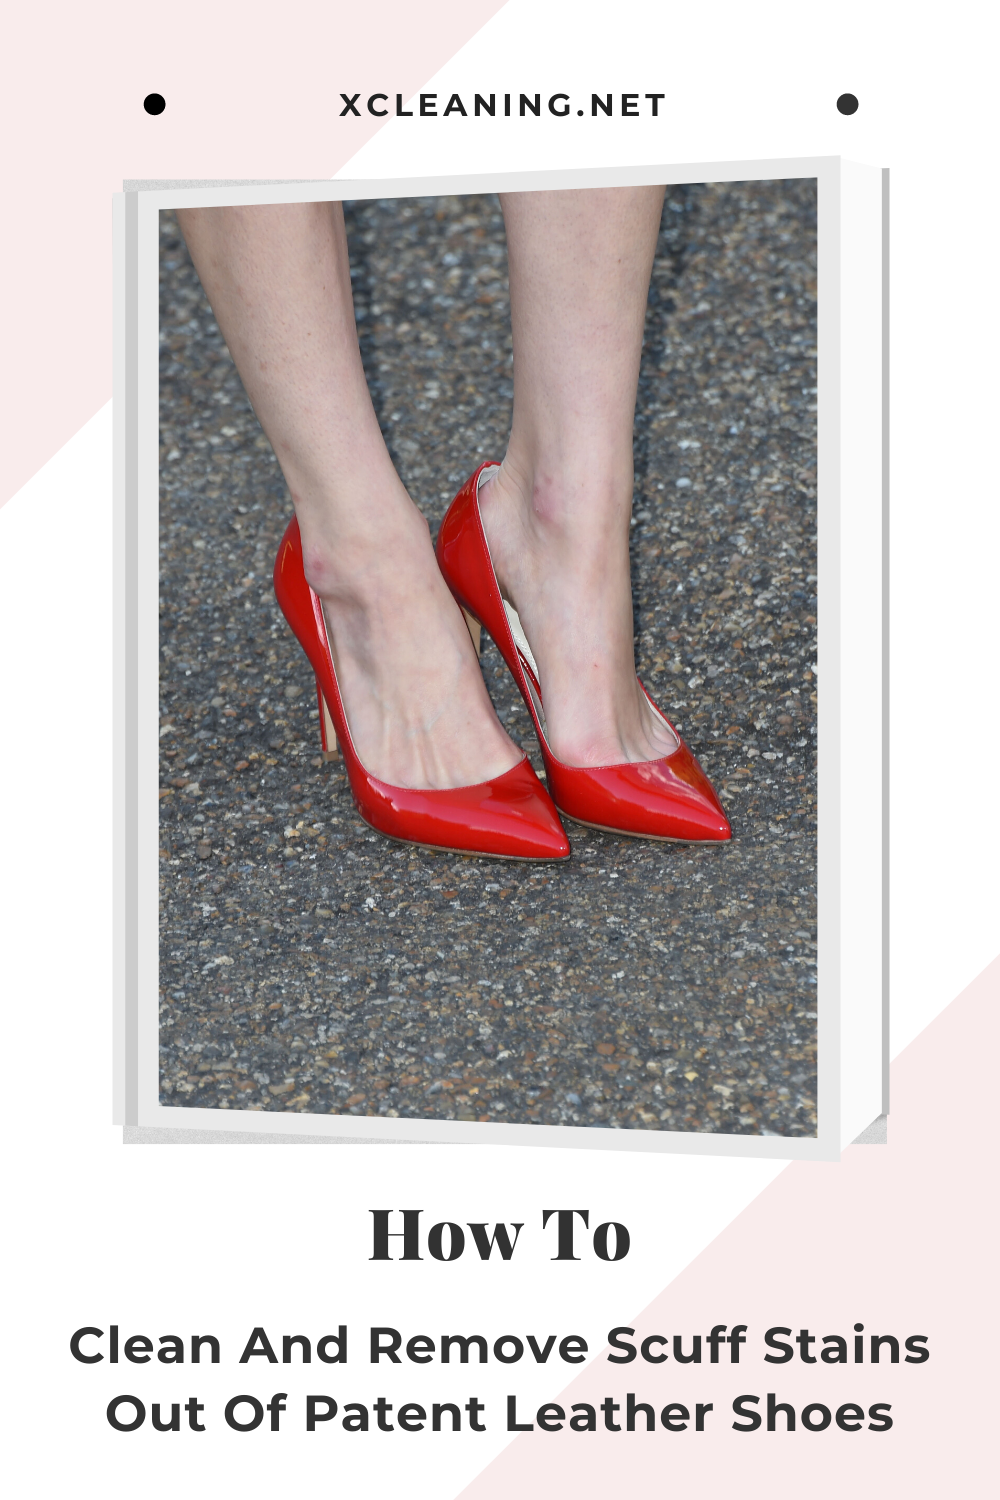 How To Clean And Remove Scuff Stains Out Of Patent Leather